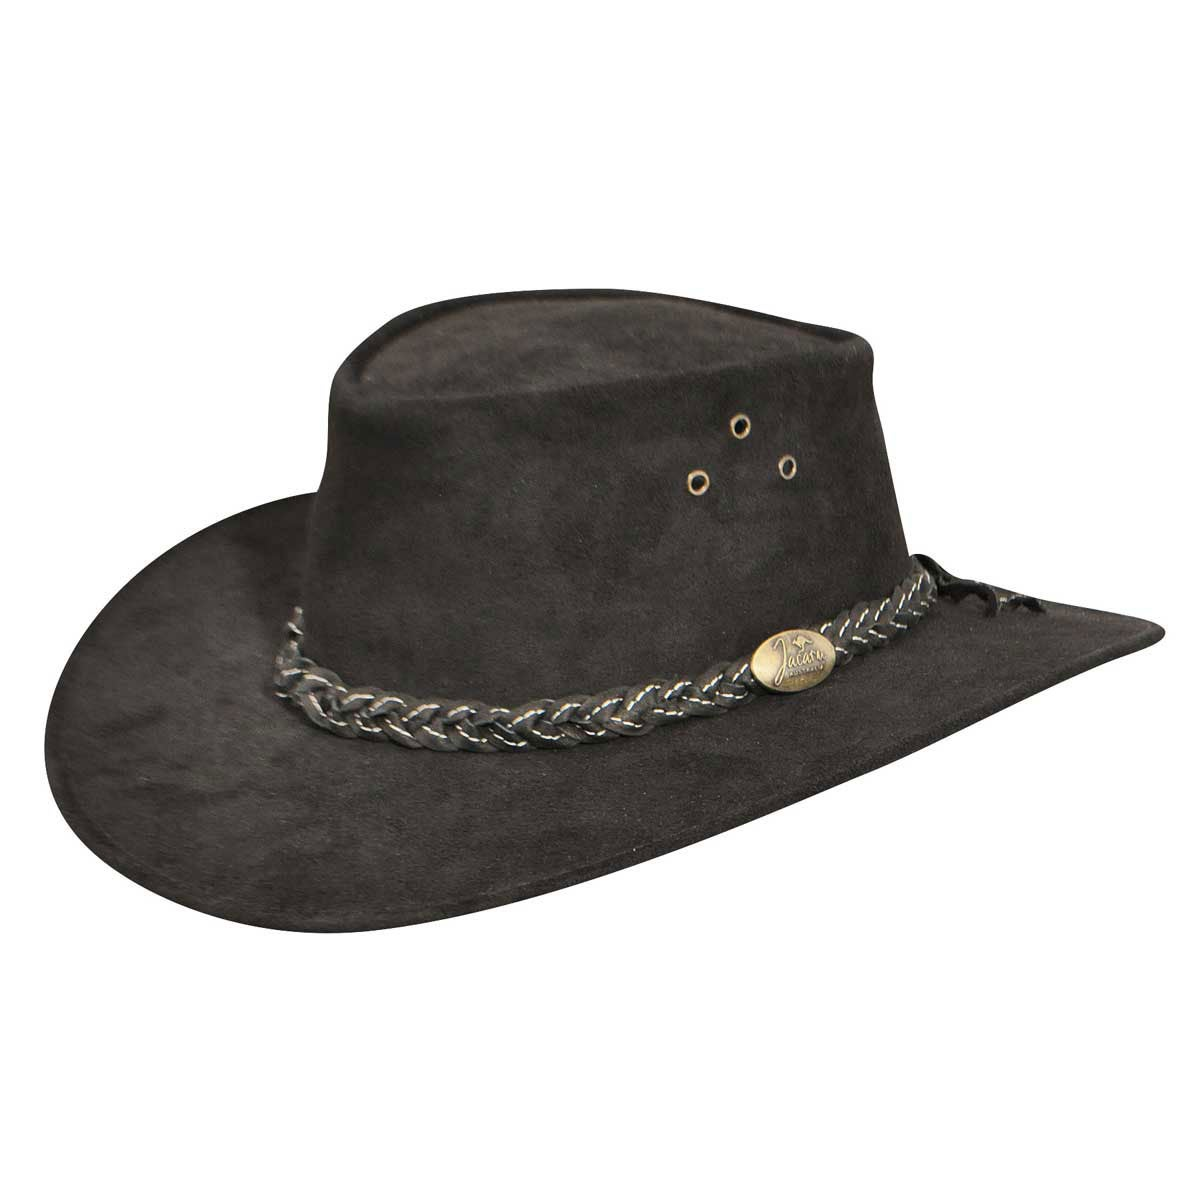 1960s – 70s Style Men's Hats Wallaroo Suede Outback Hat $79.00 AT vintagedancer.com